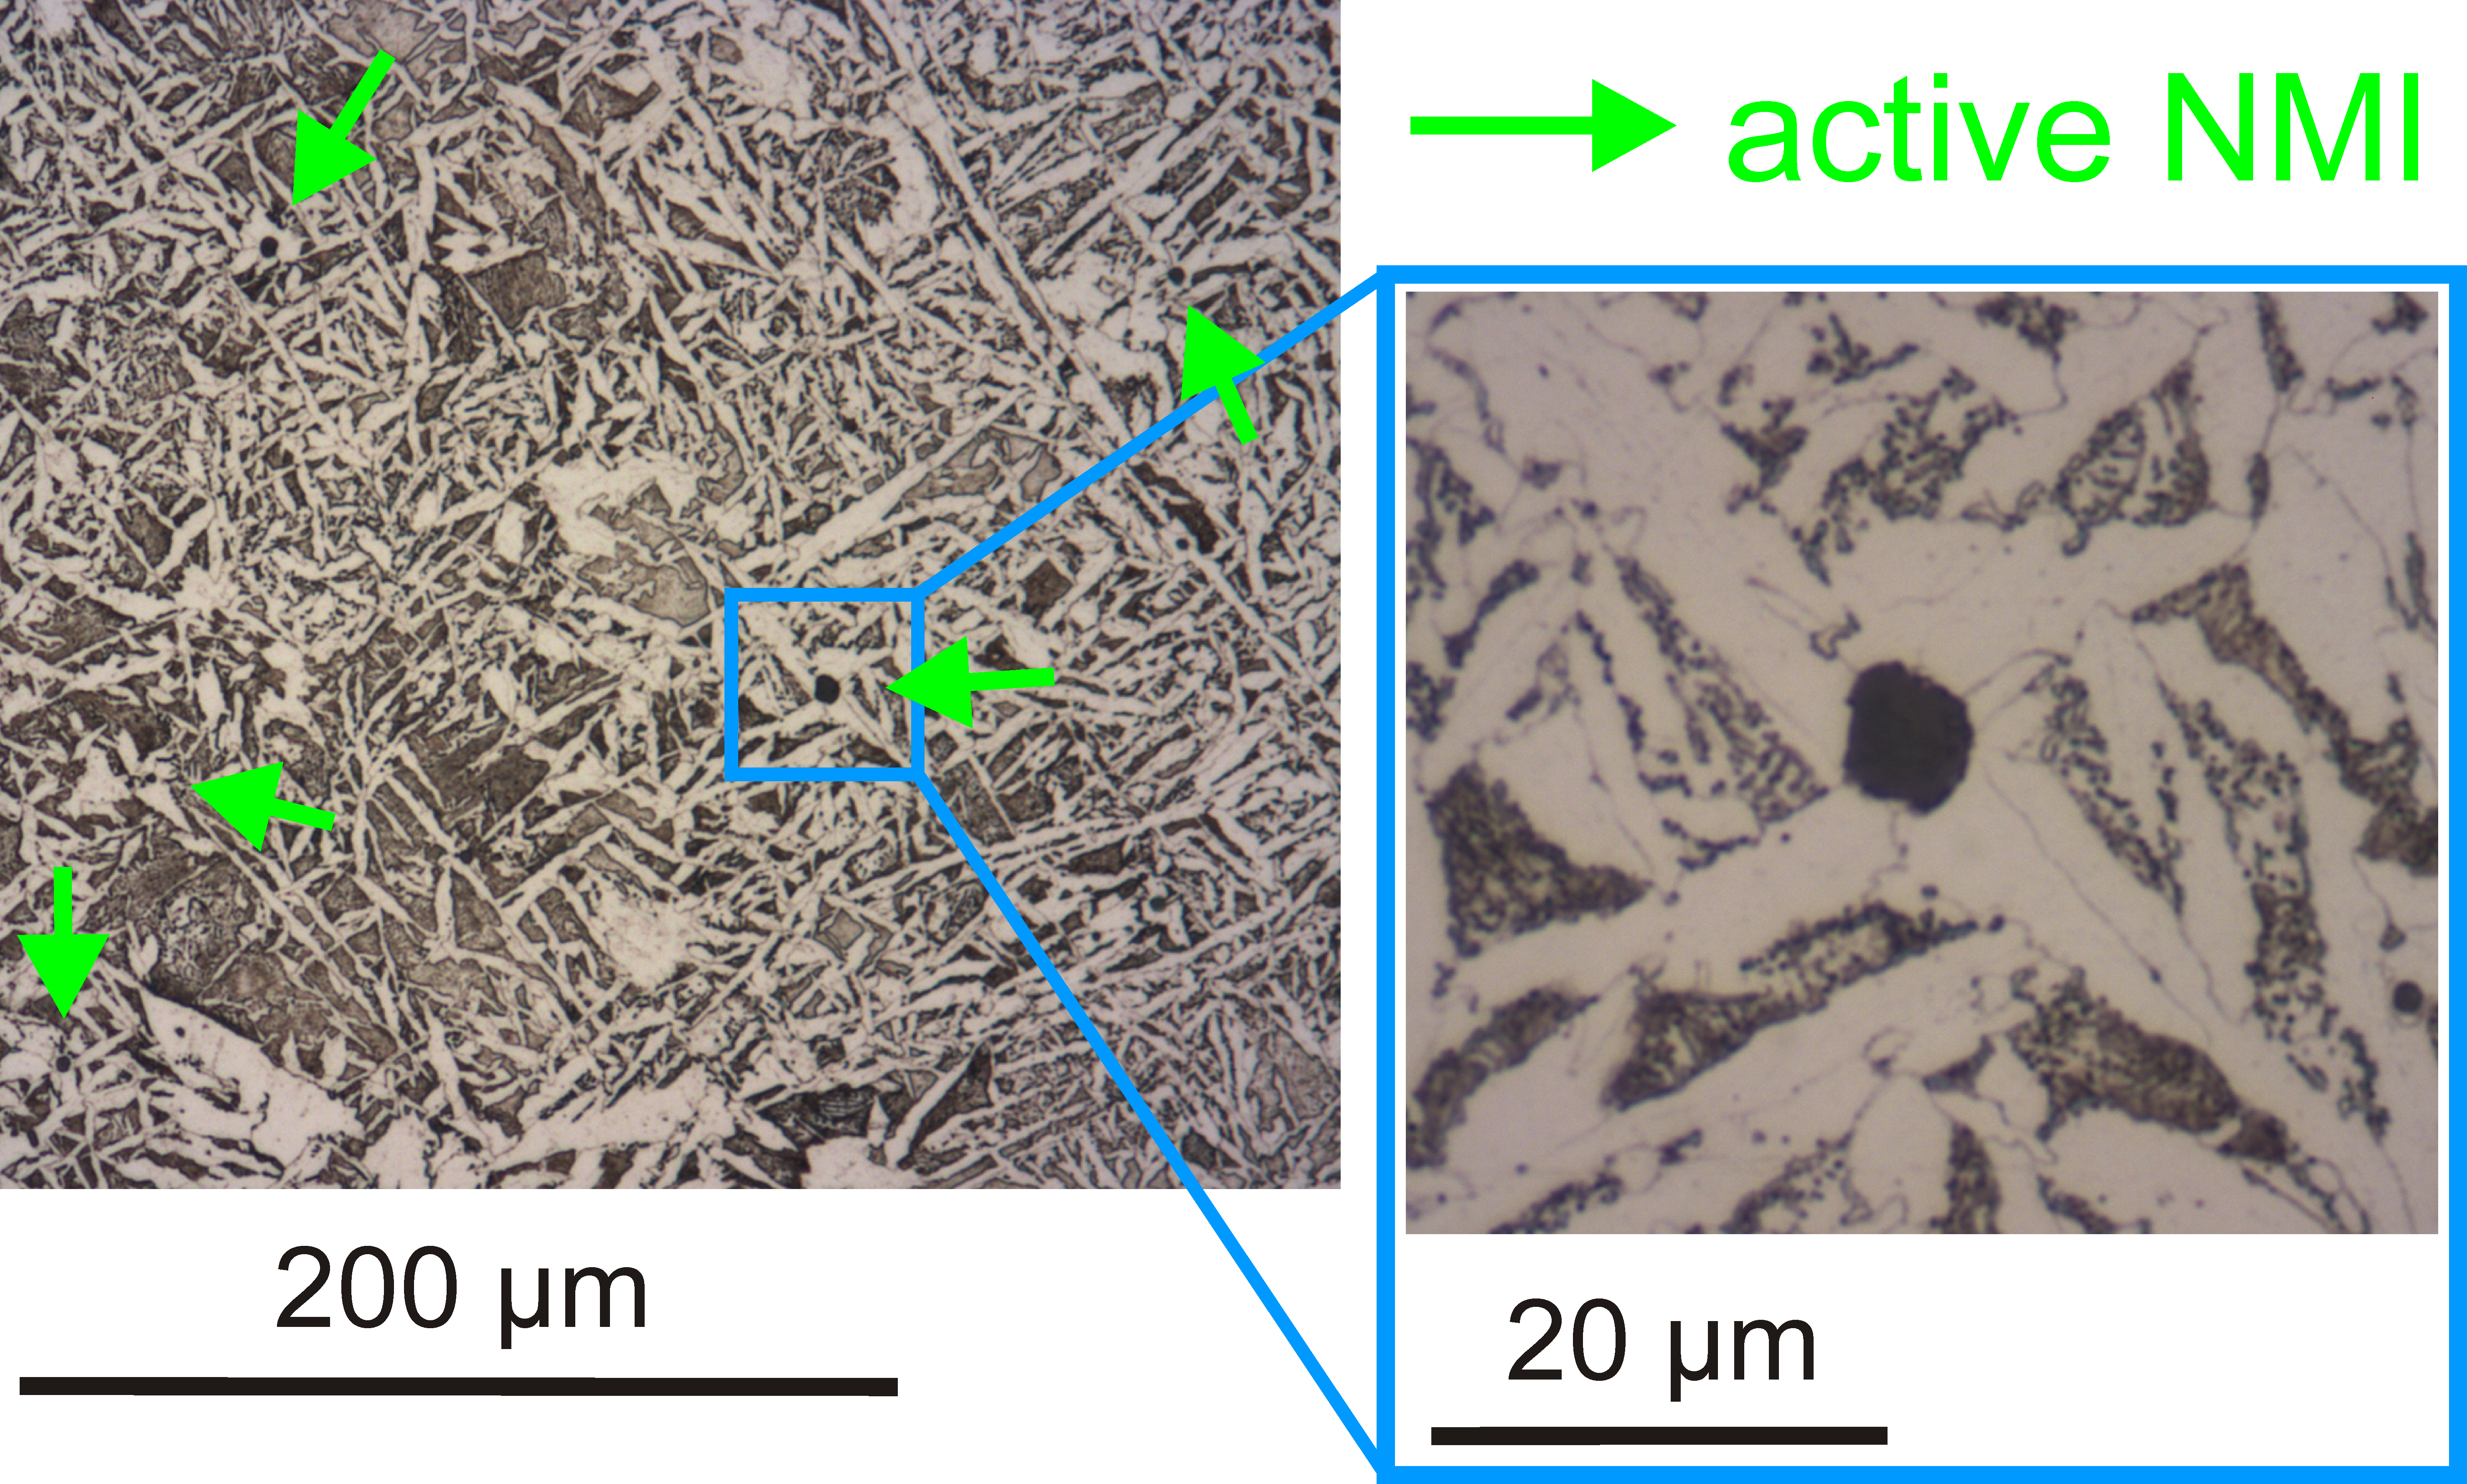 Acicular ferrite nucleating on active non-metallic inclusions, forming a fine grained, interlocking microstructure